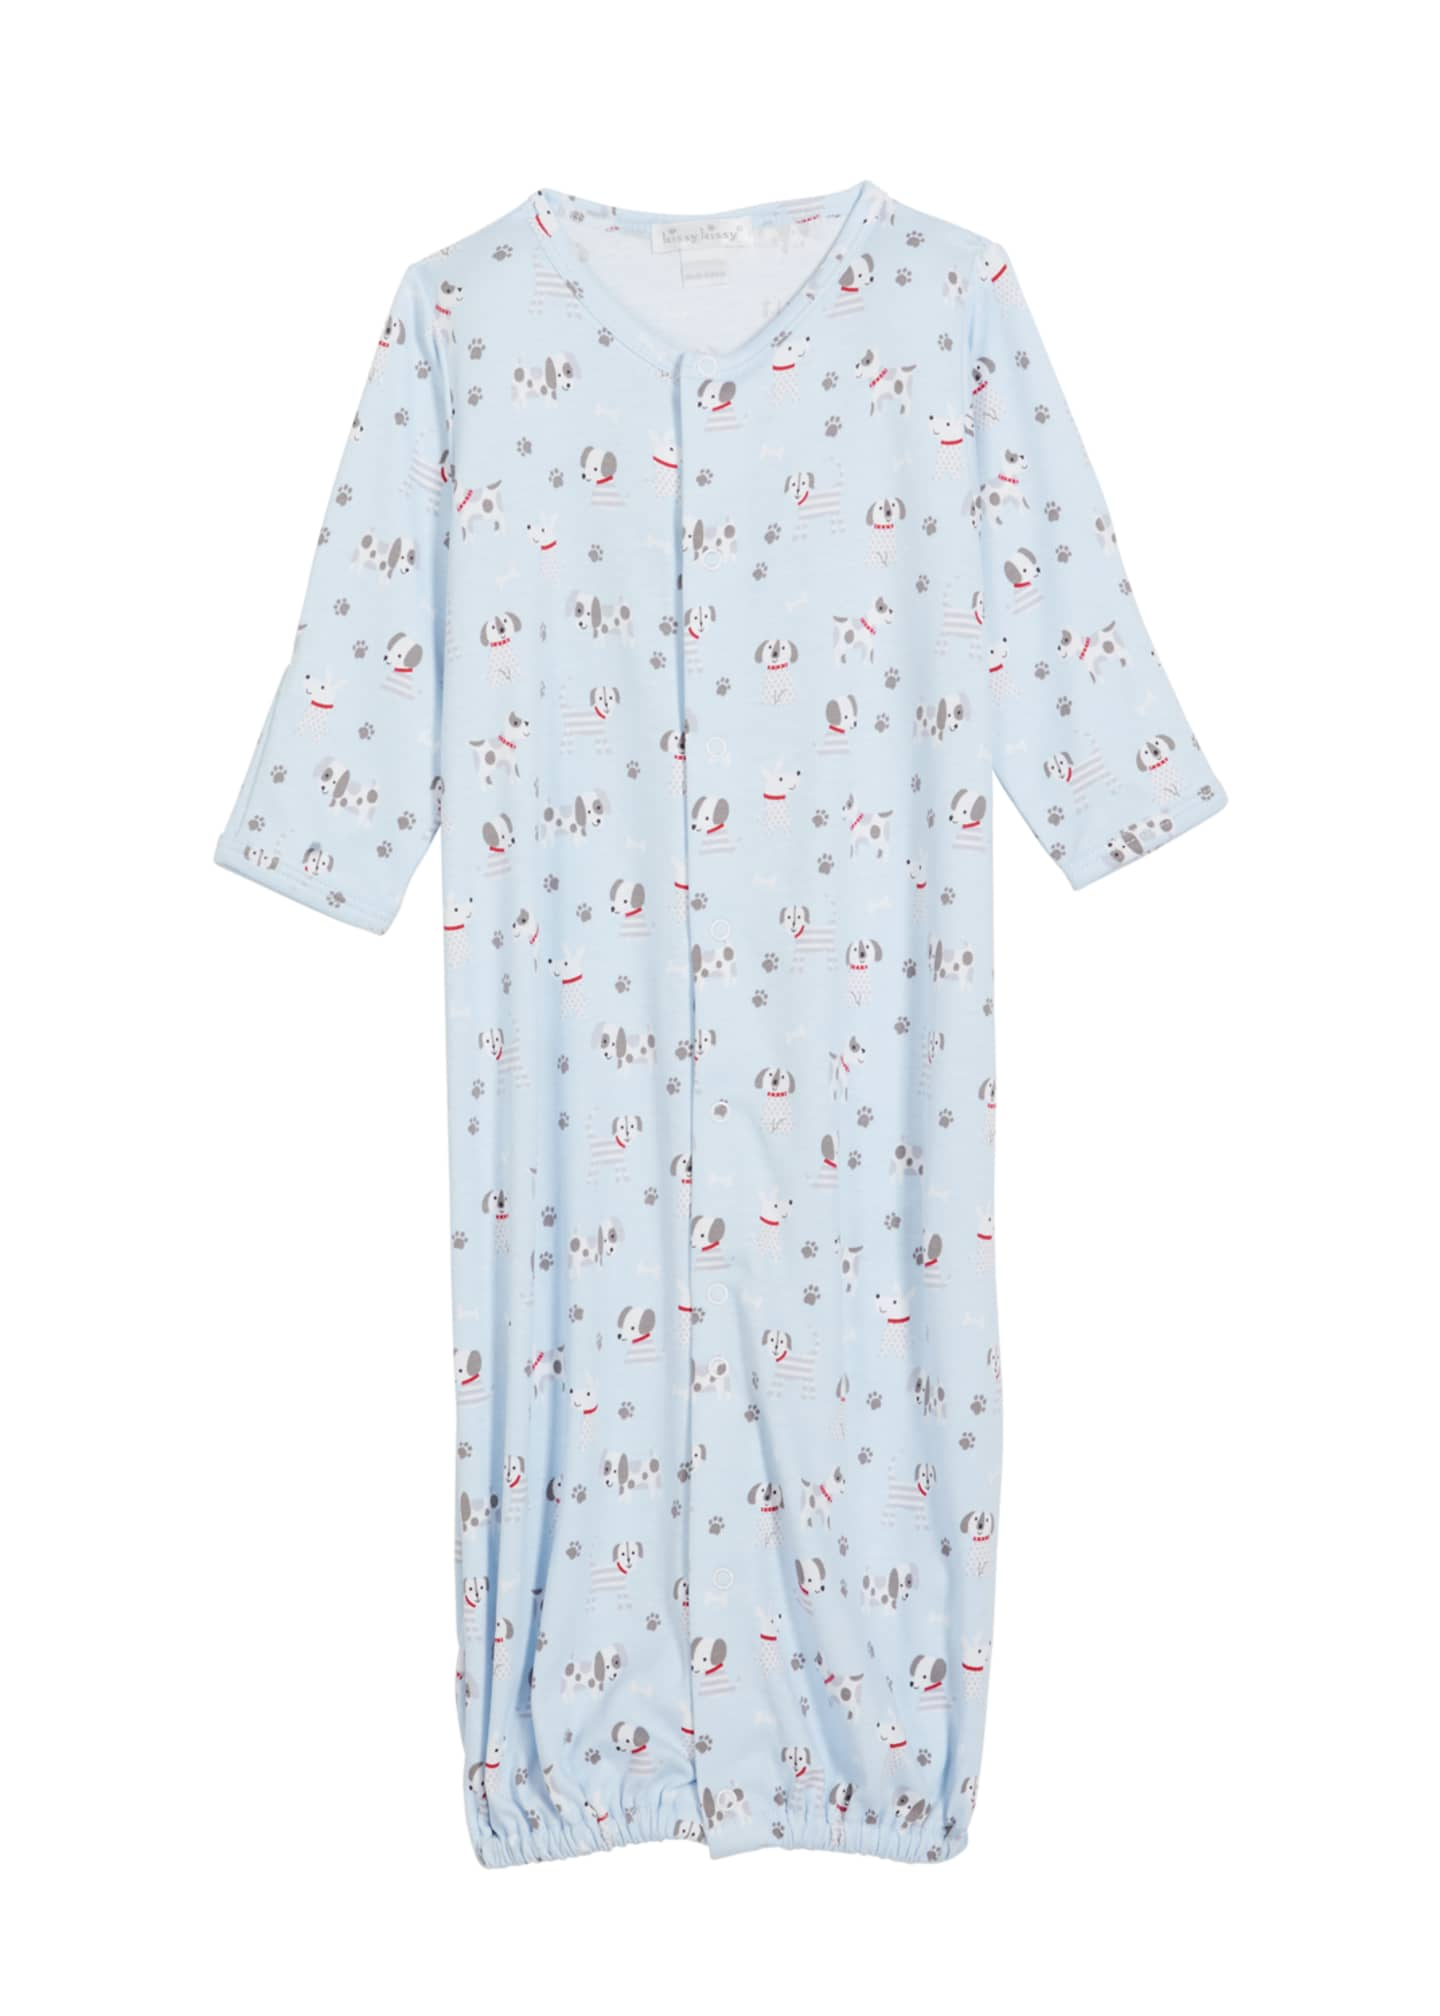 Image 1 of 1: Boy's Puppy Posse Printed Sleep Gown, Size Newborn-S